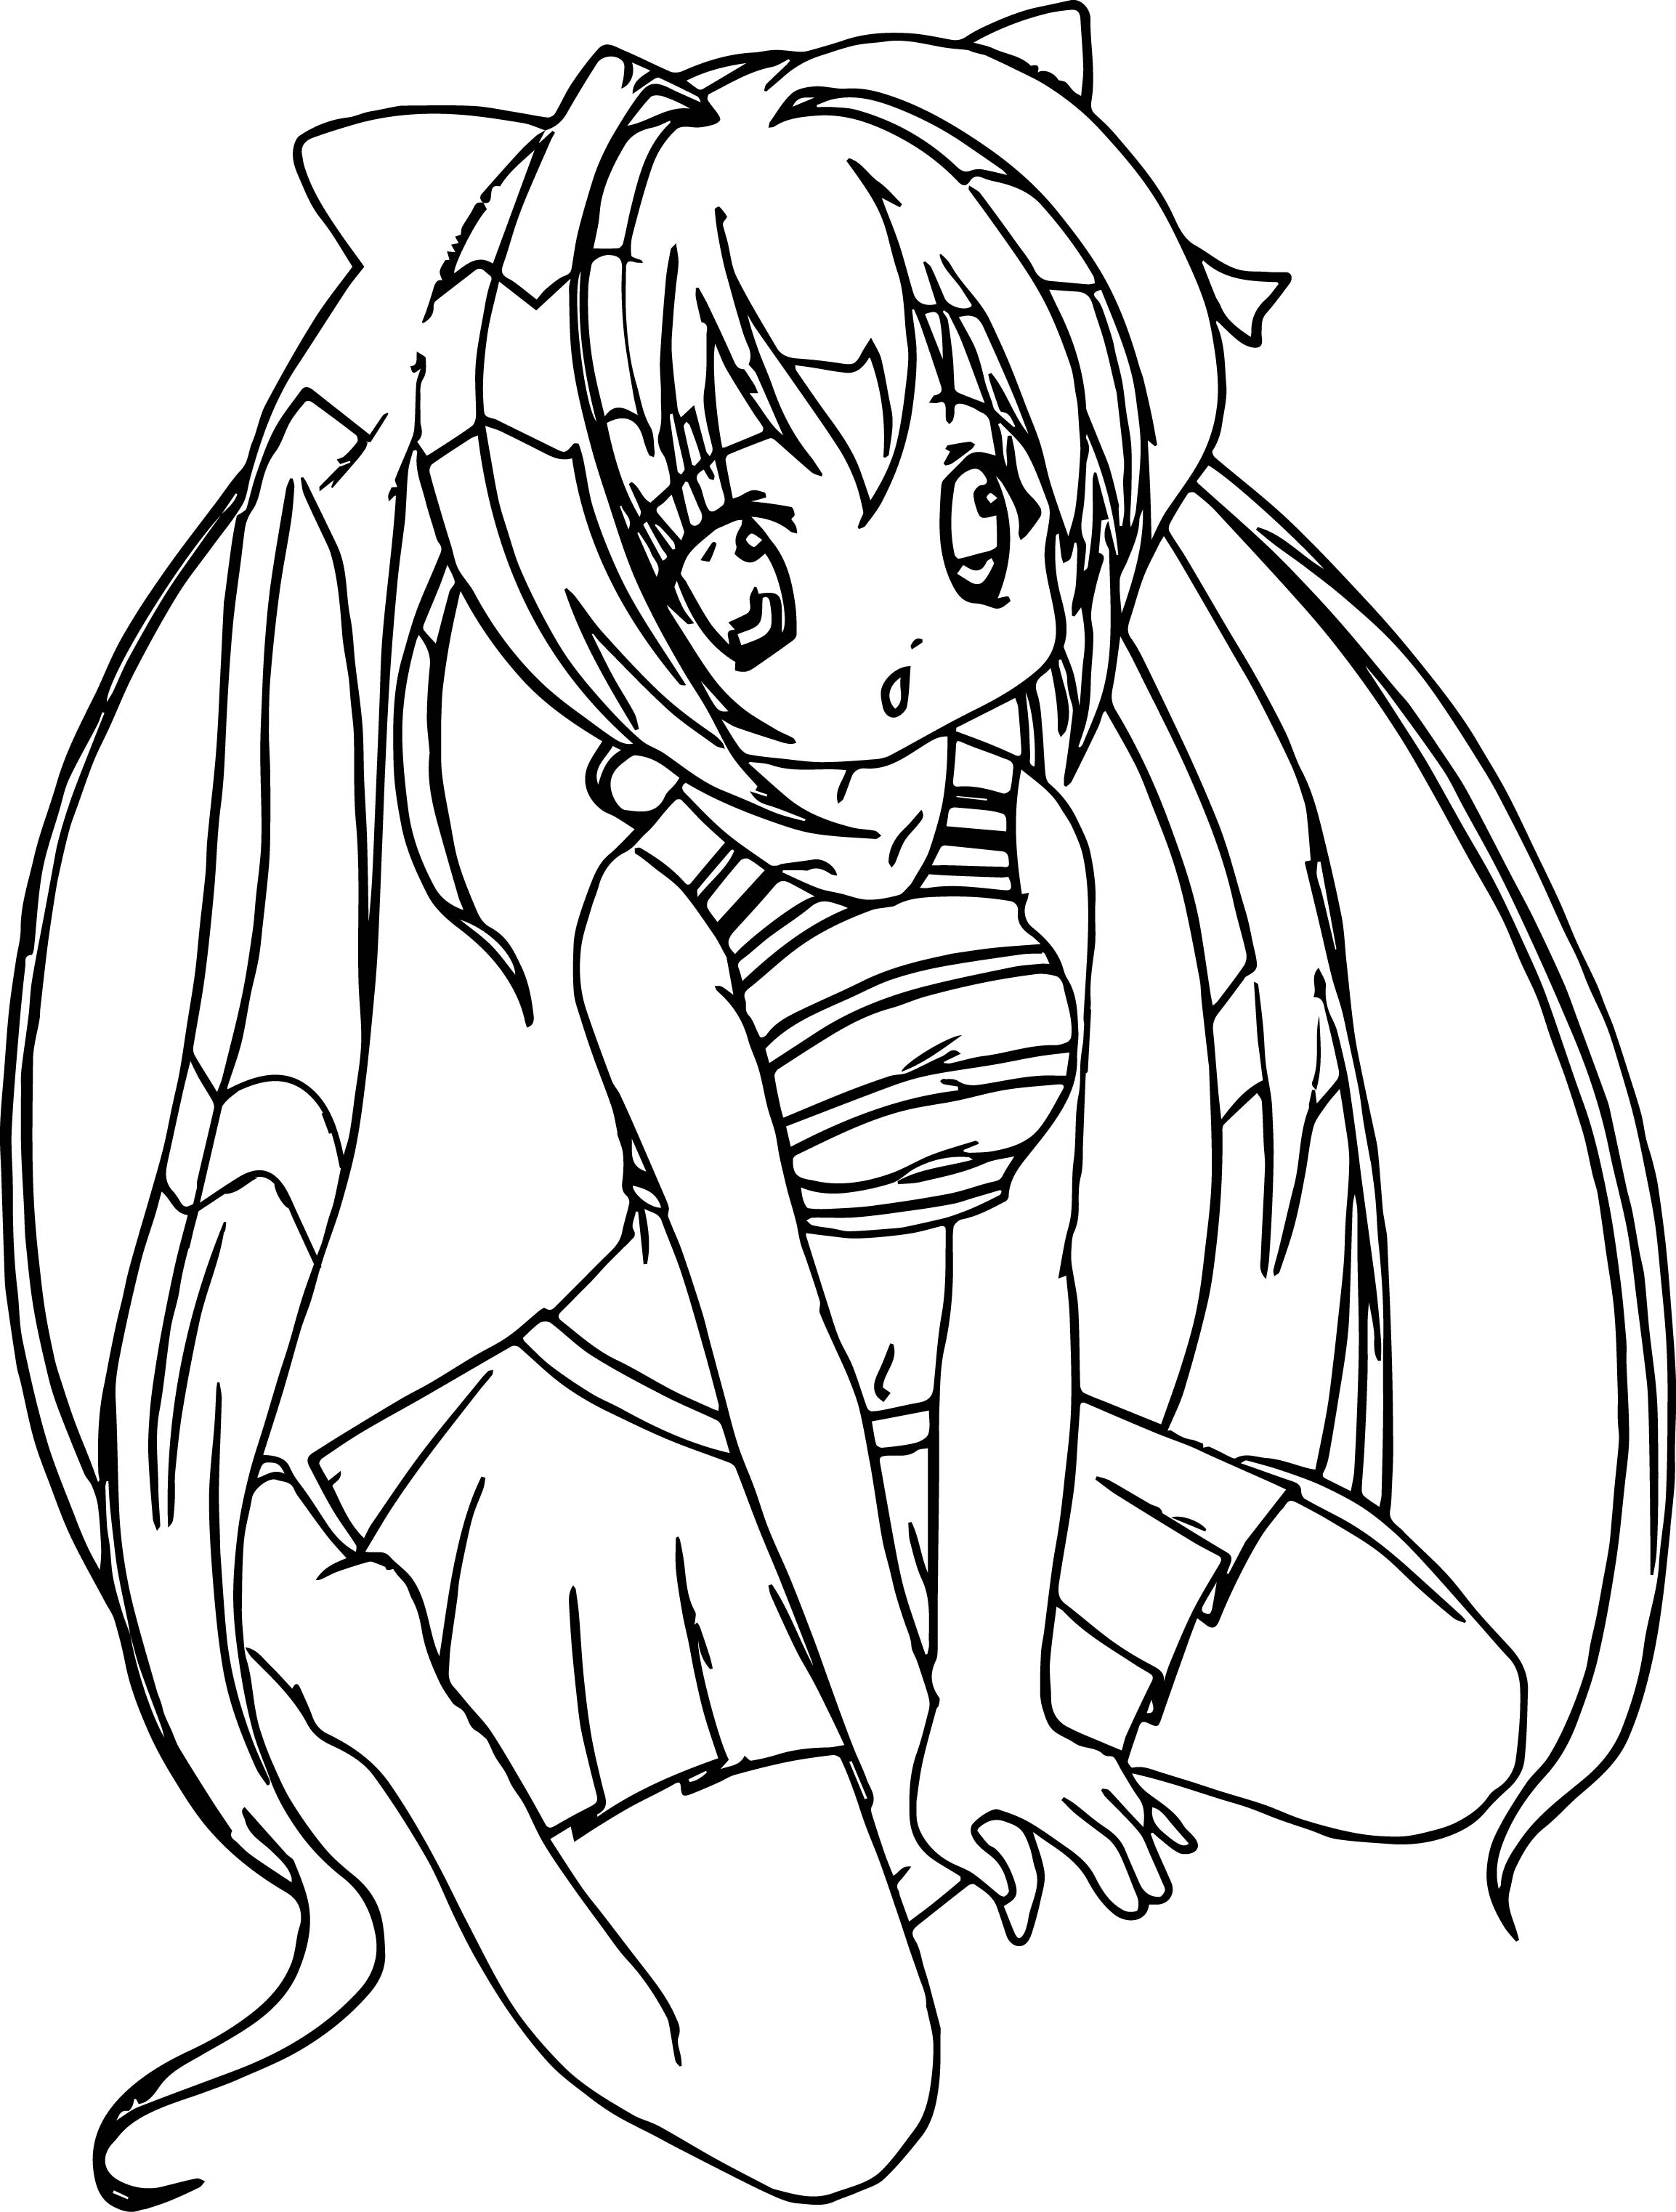 Anime girl student coloring page for Anime character coloring pages